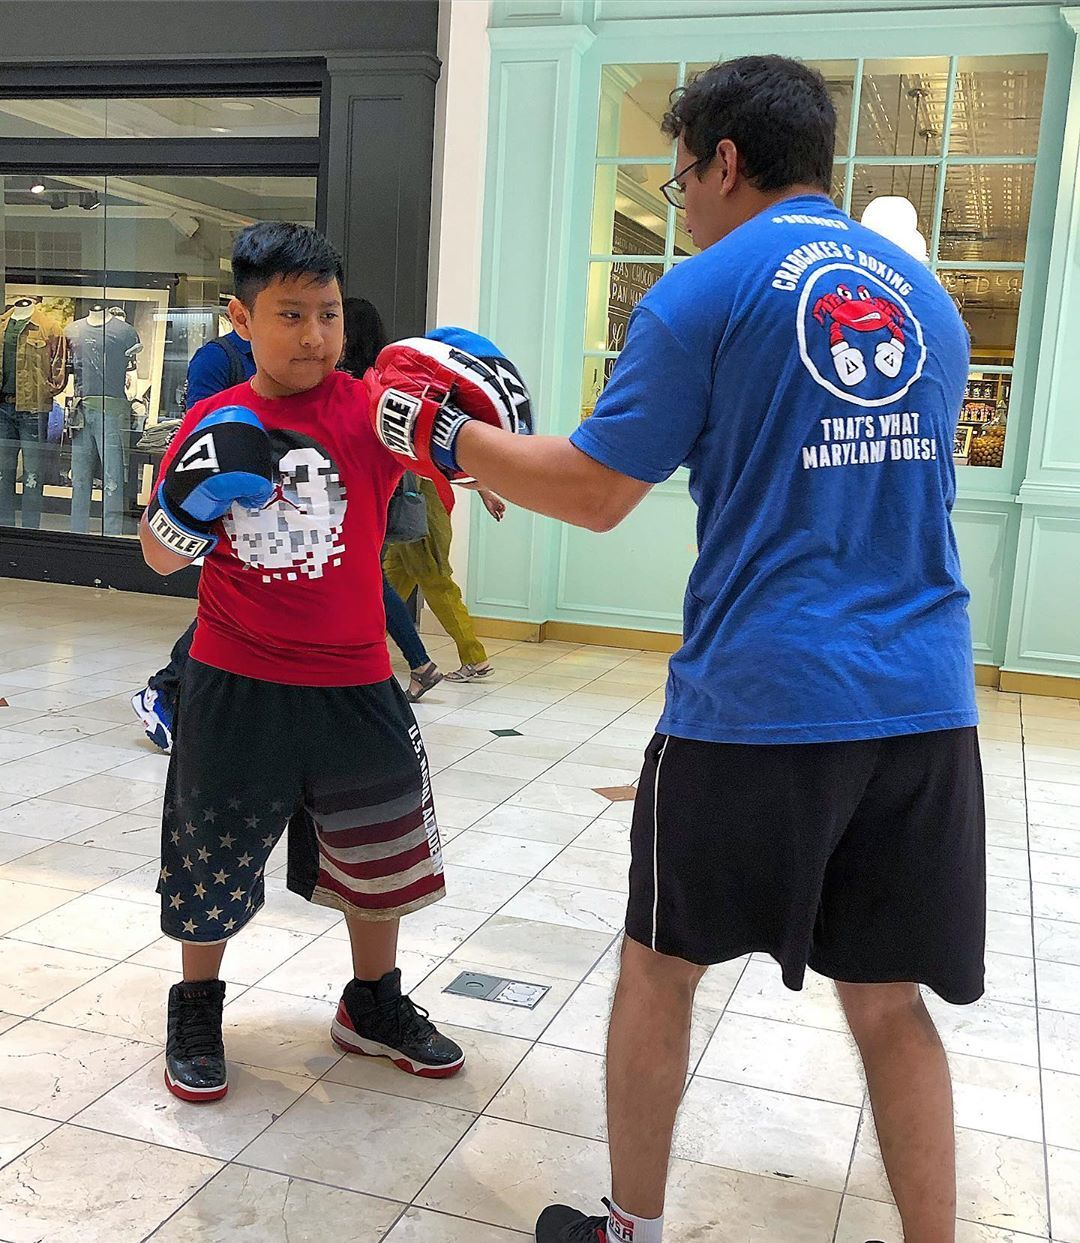 Looking to get the kids involved in boxing? We have a Youth Program too!🥊🥊 • NO CONTACT / DISCIPLINE...